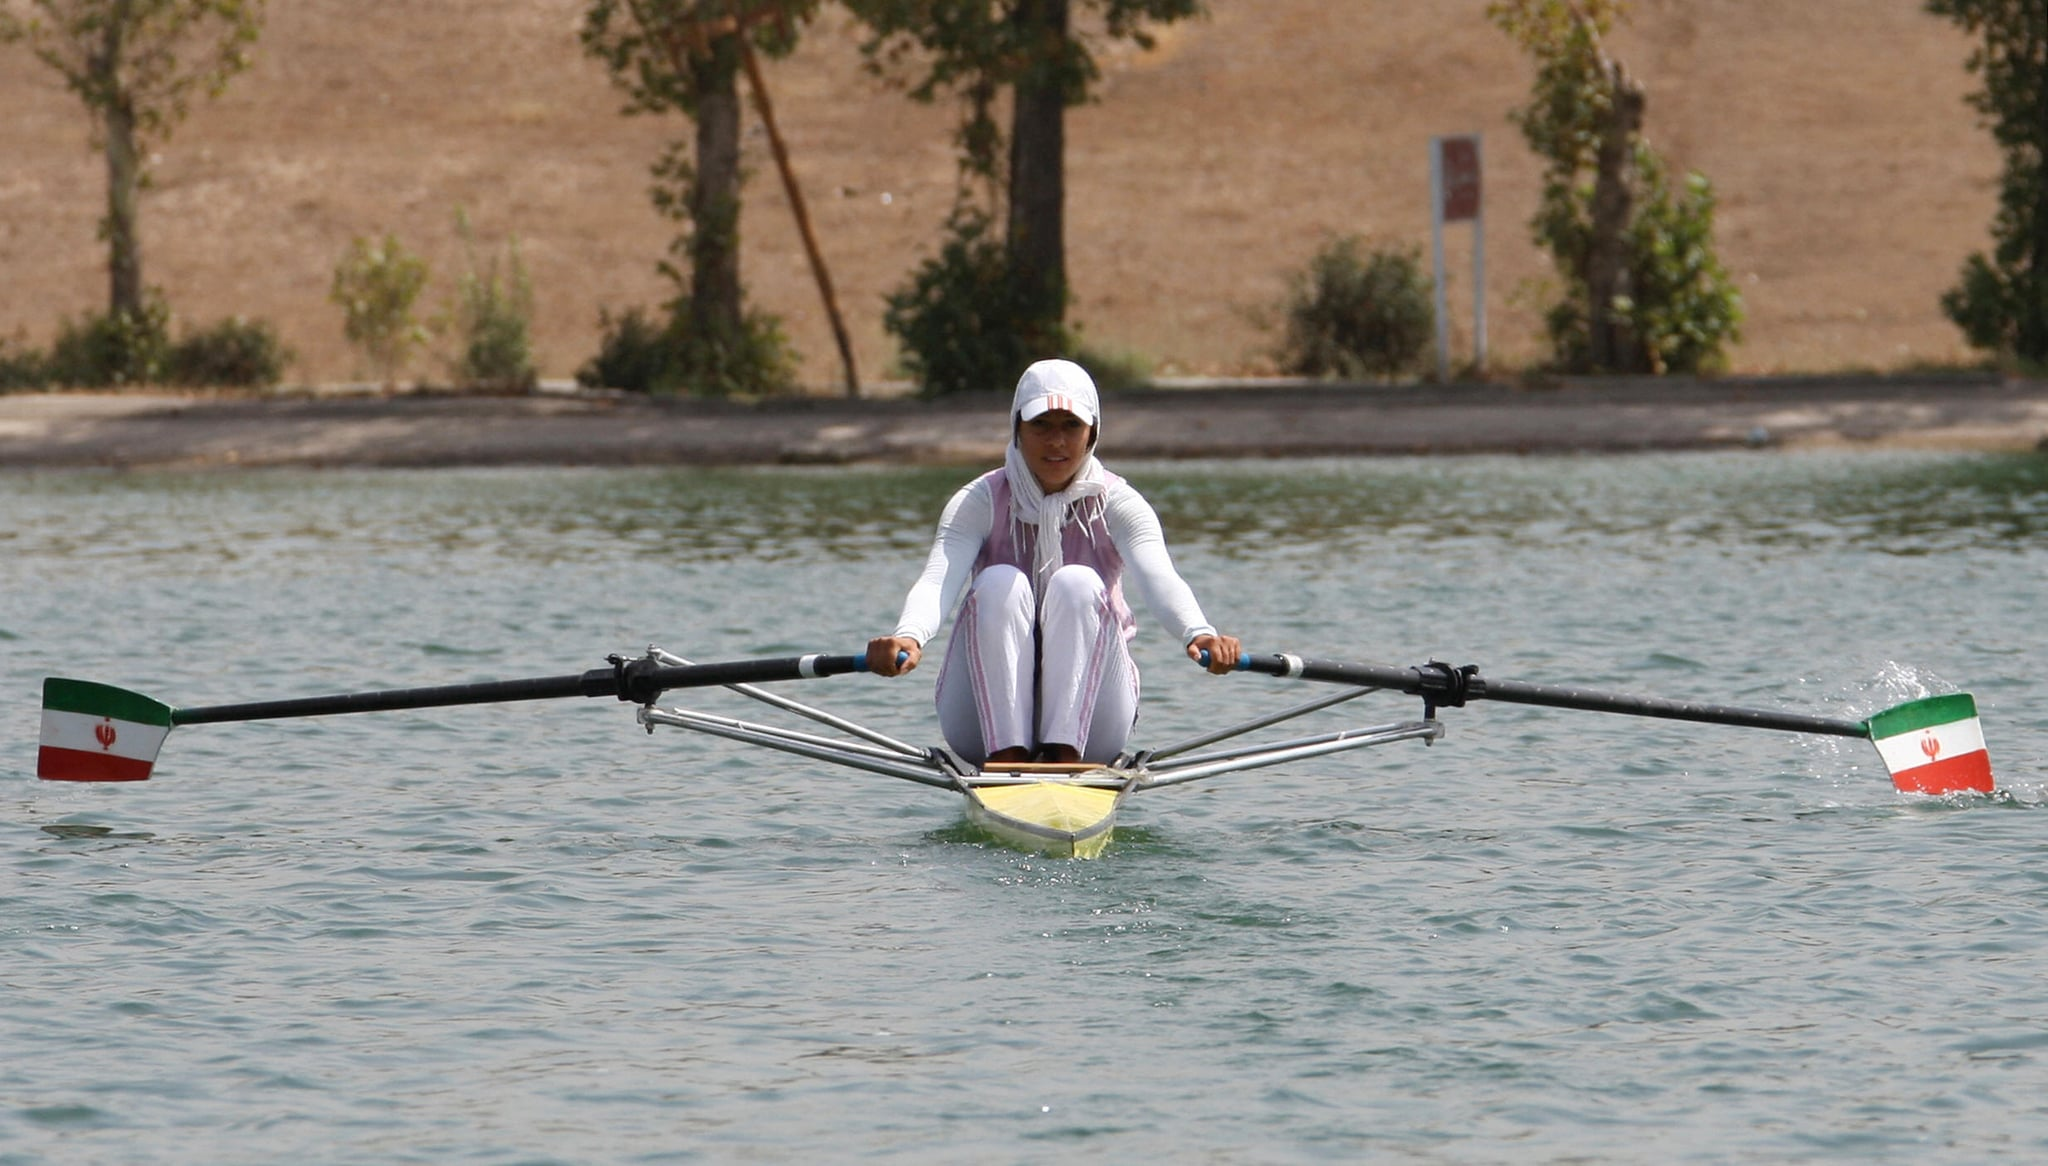 Homa trains at Azadi Stadium's artificial lake in Tehran.